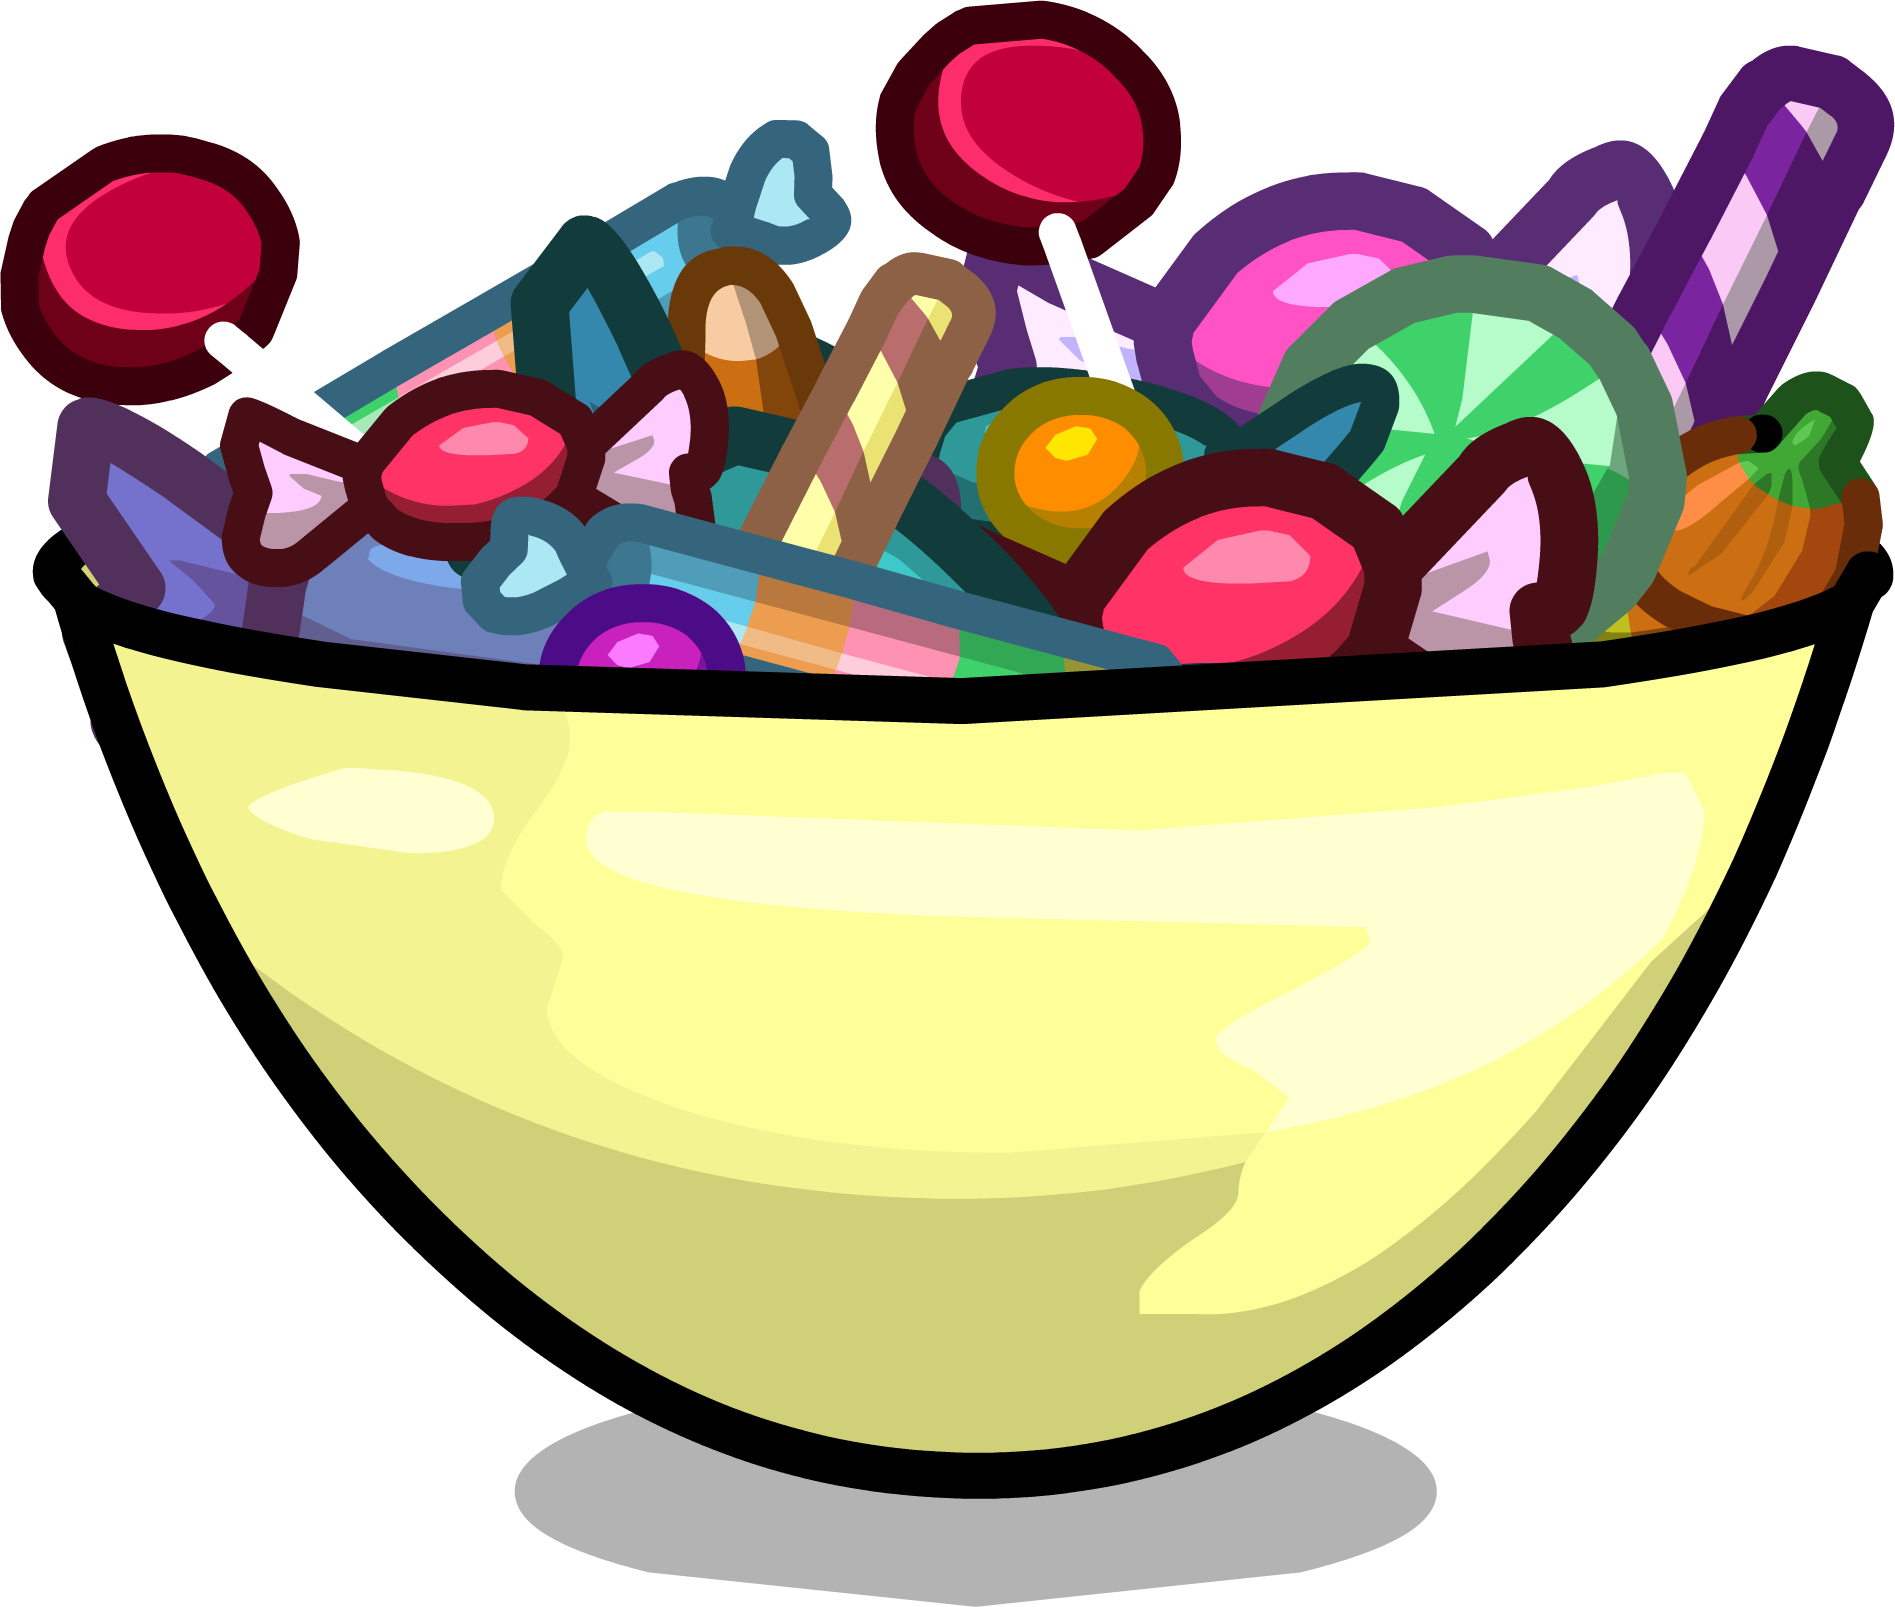 Candy bowl png. Trick or treats club